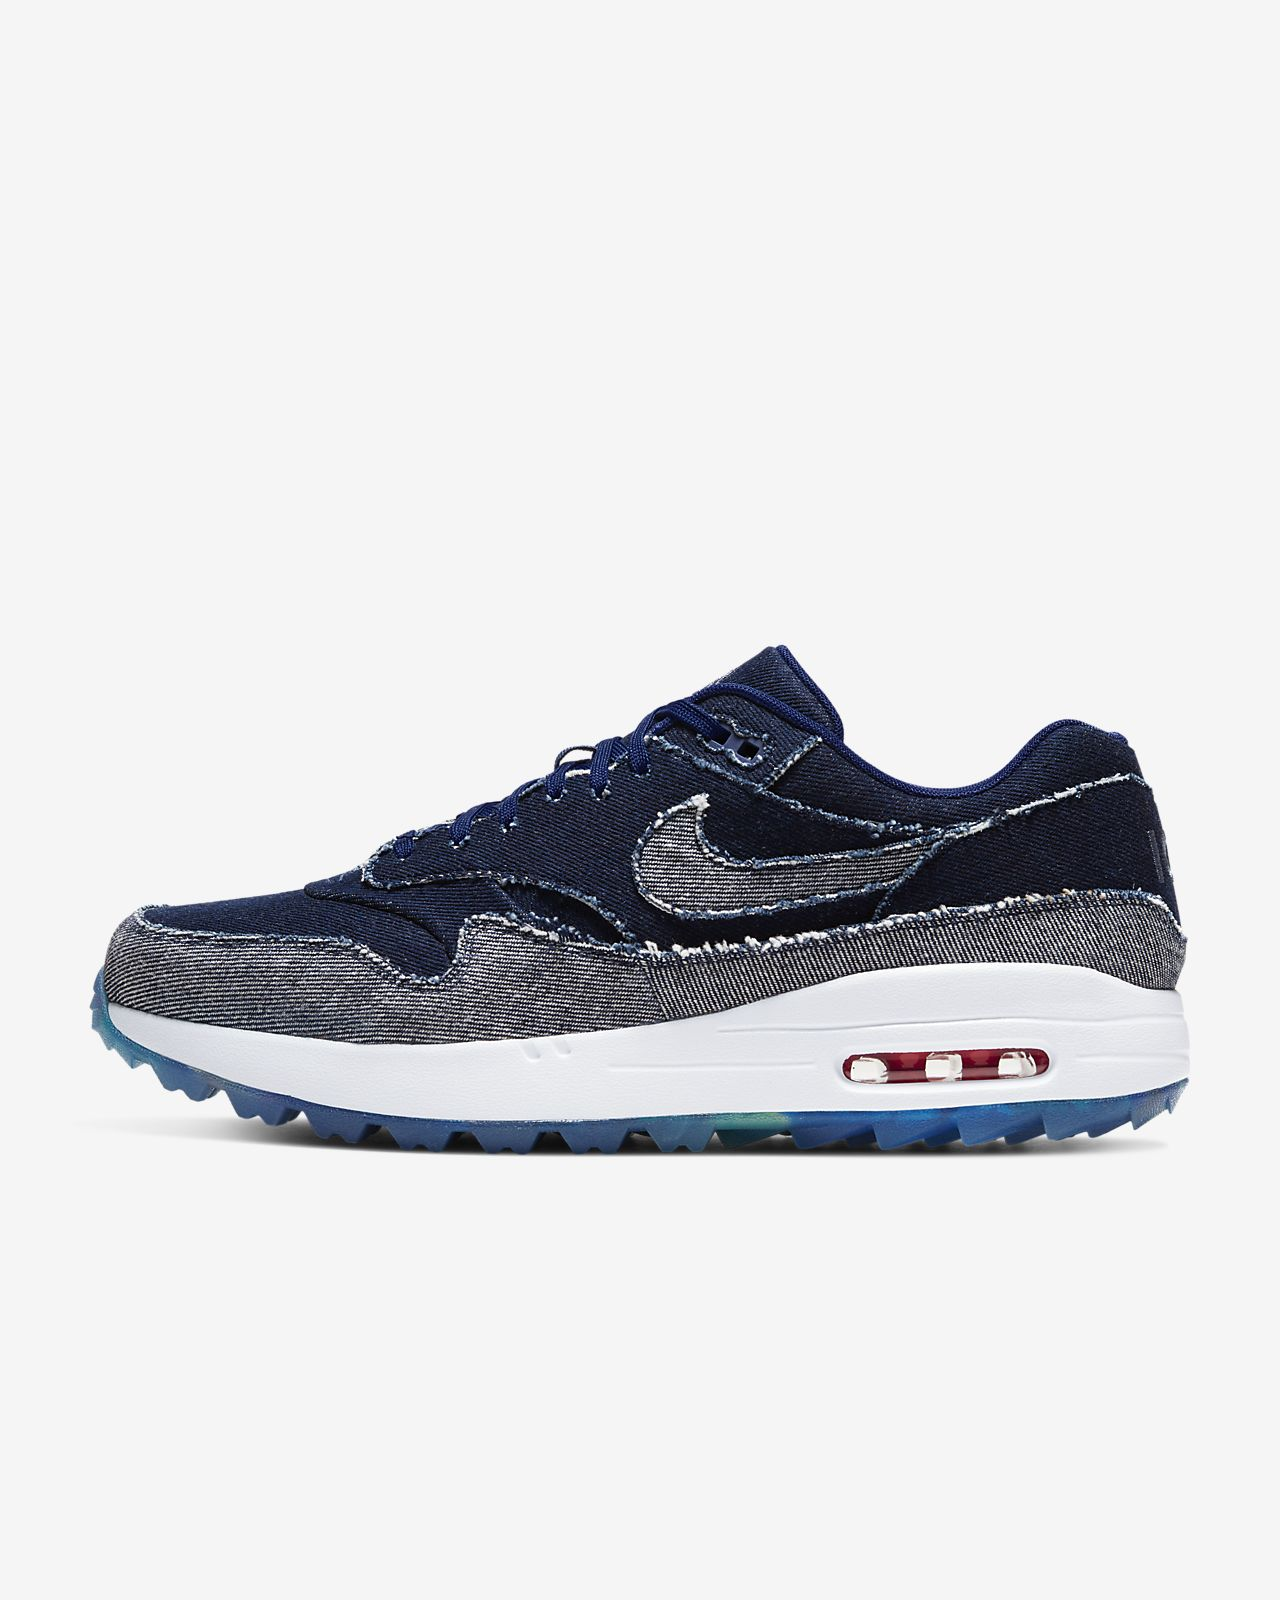 Nike Air Max 1 G NRG Men's Golf Shoe